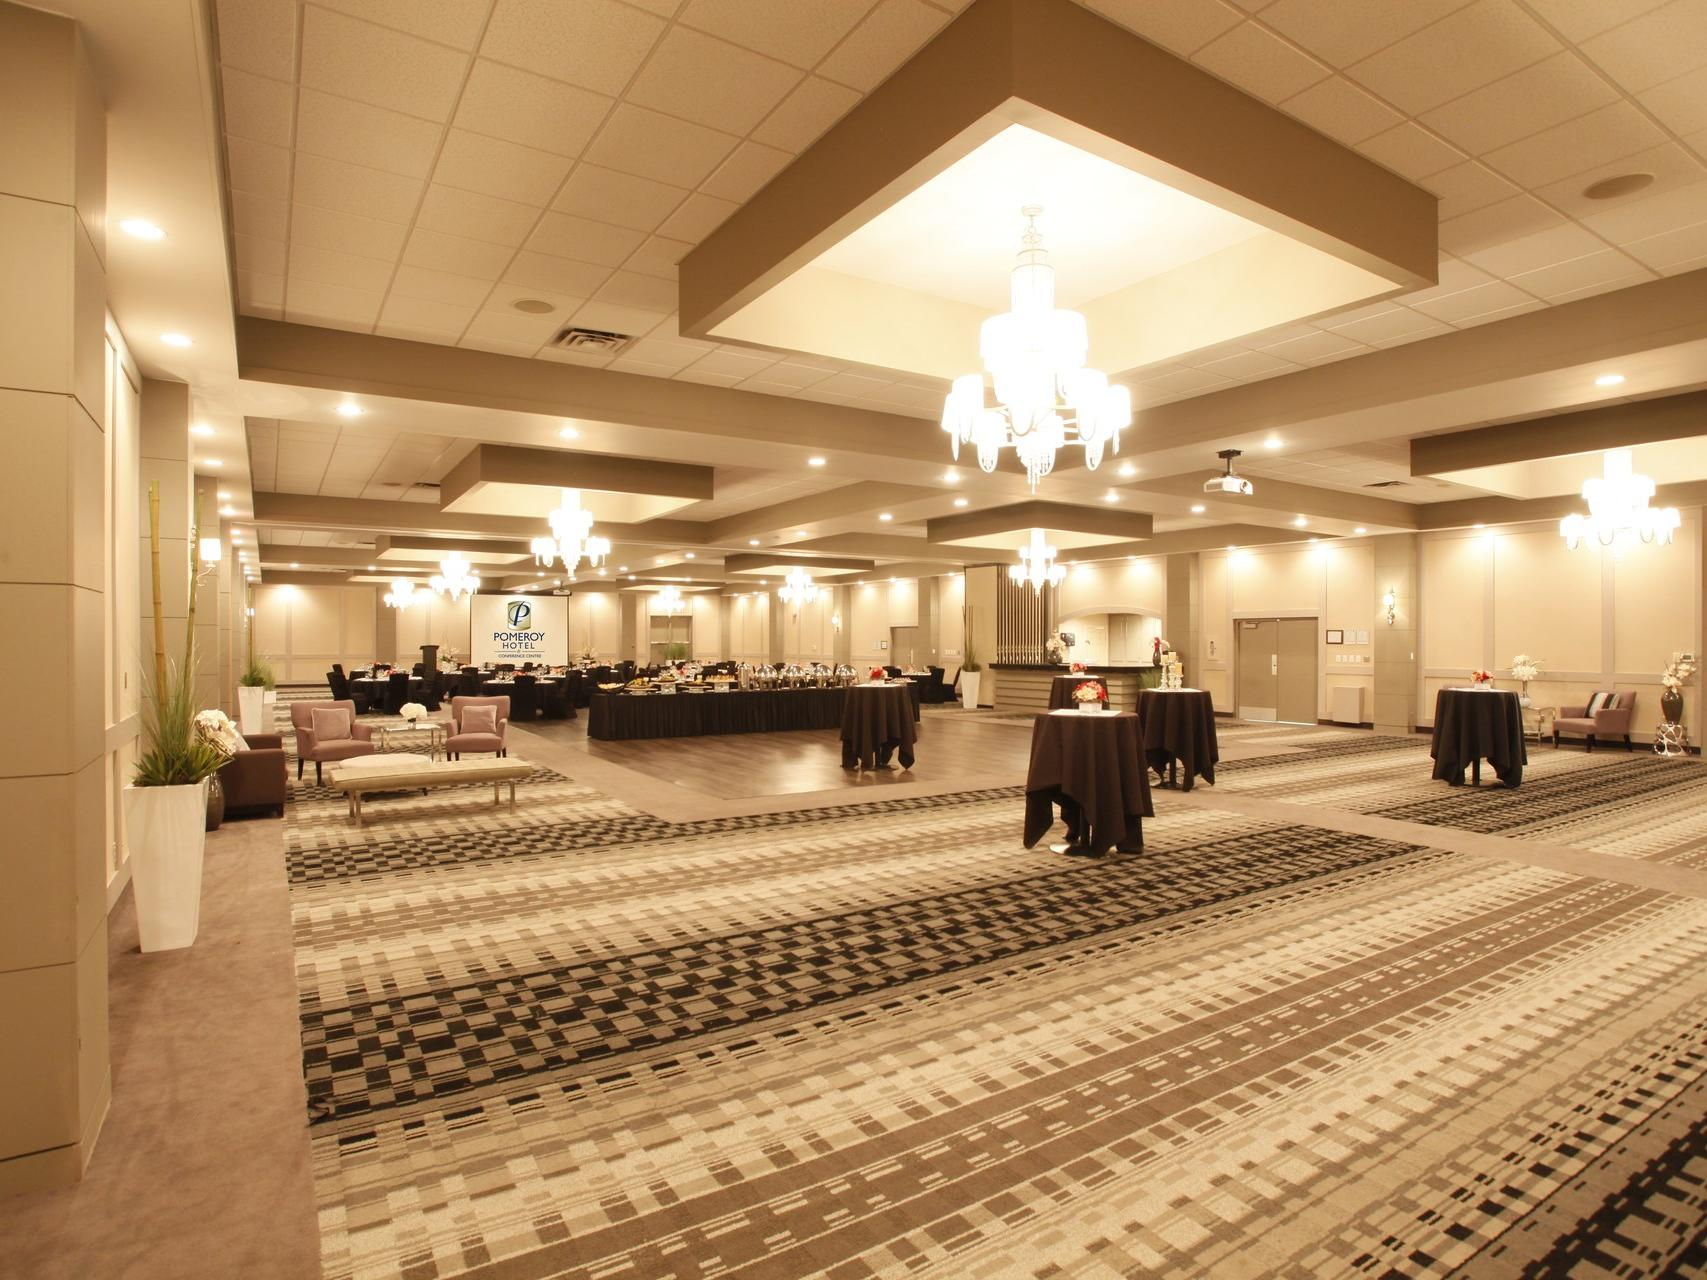 a large room with chairs and tables